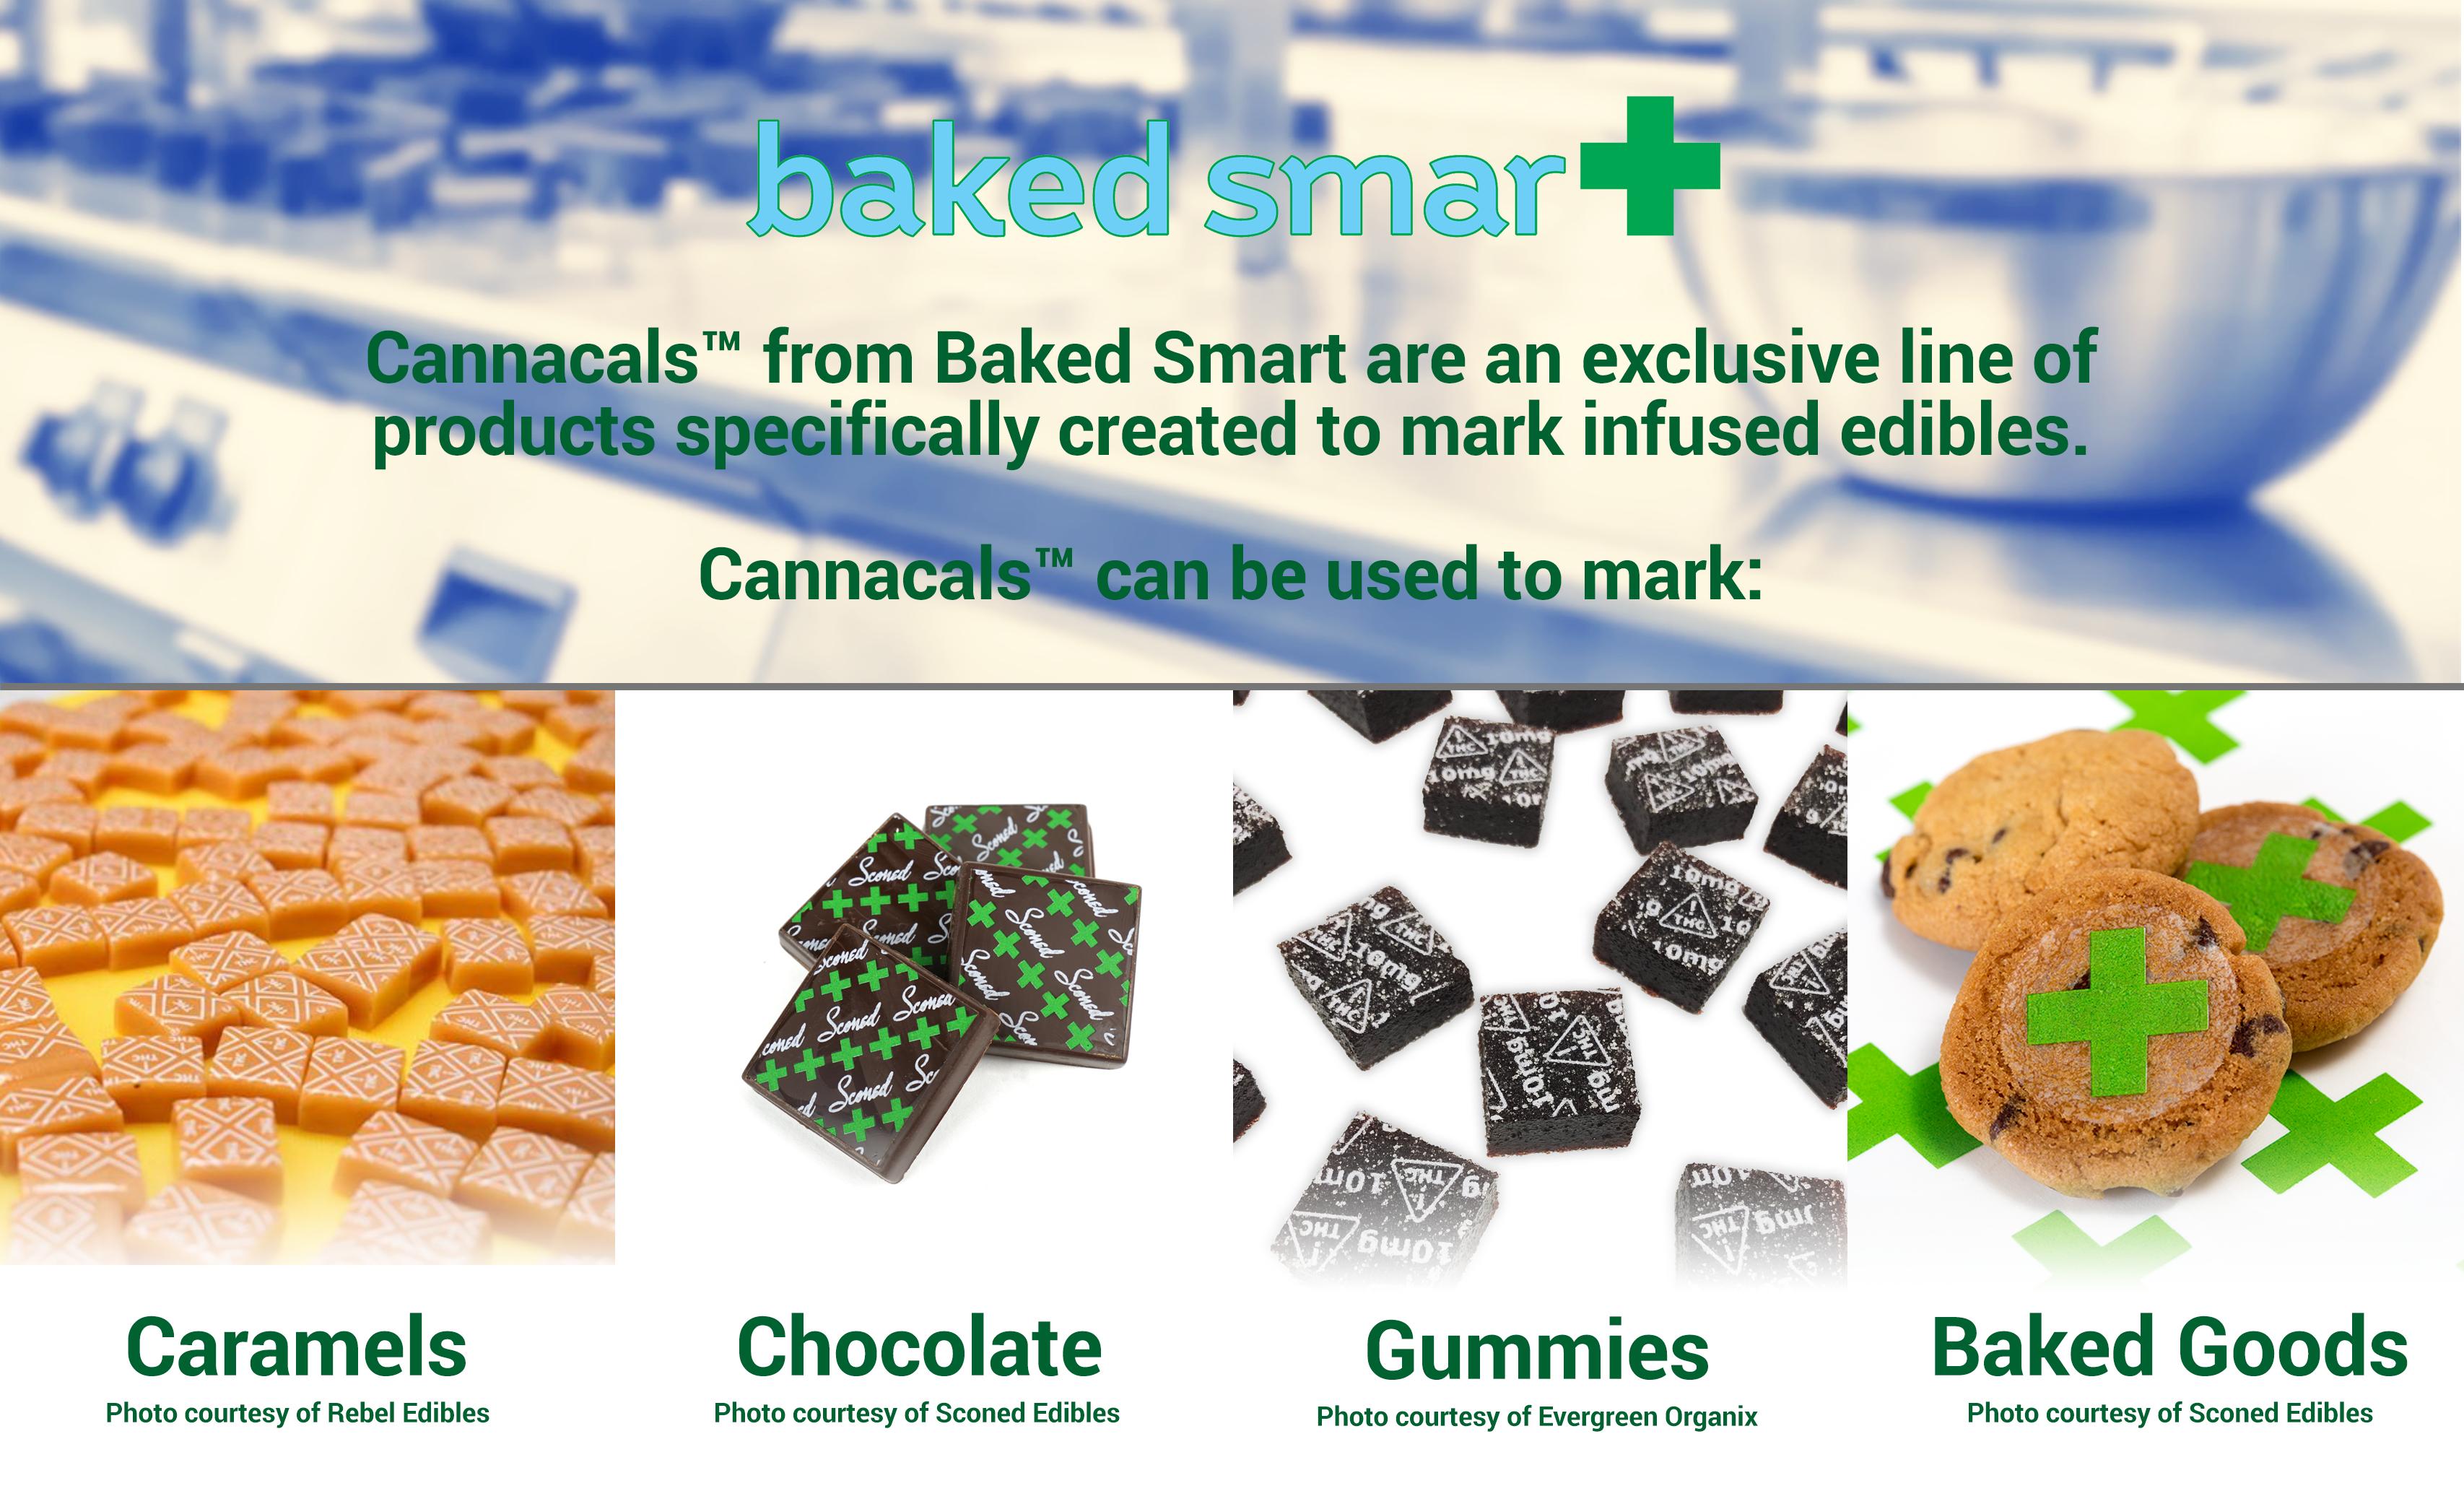 baked smart products for marking infused foods